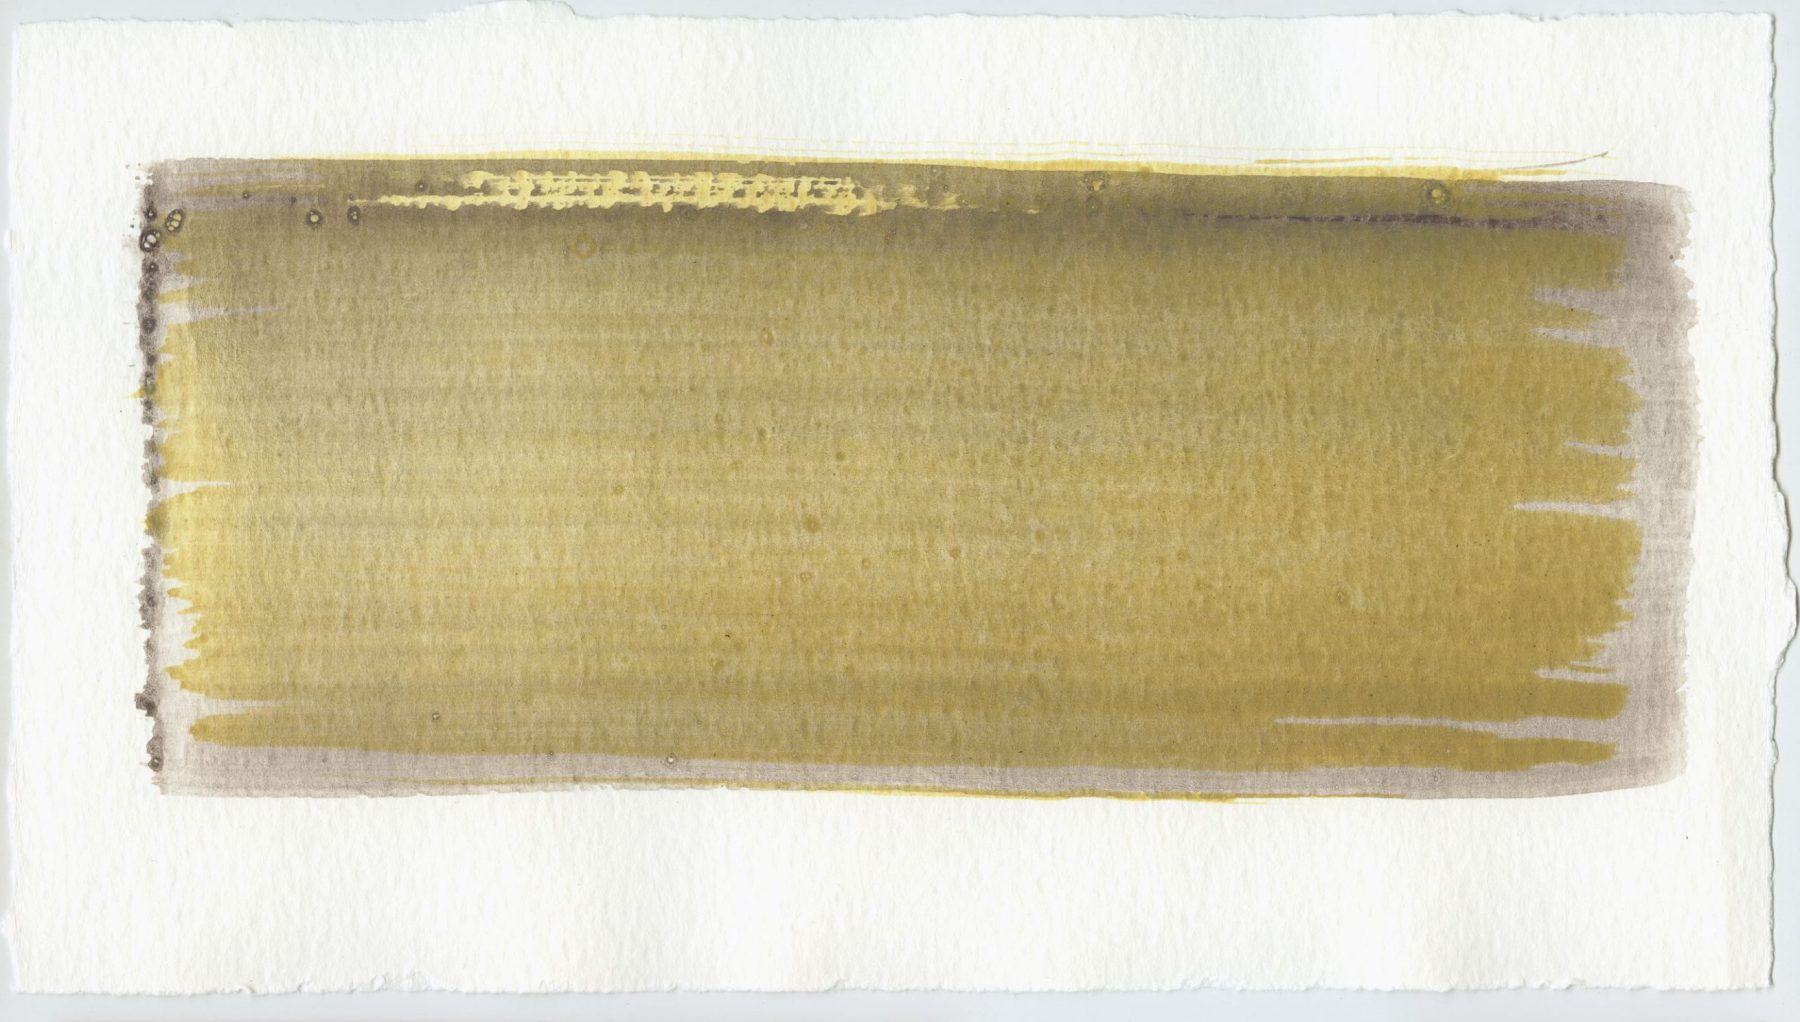 Brush stroke no. 46 - SOLD - Selfmade pigment: Mortel paarsgrijs fijn, Mortelse oker